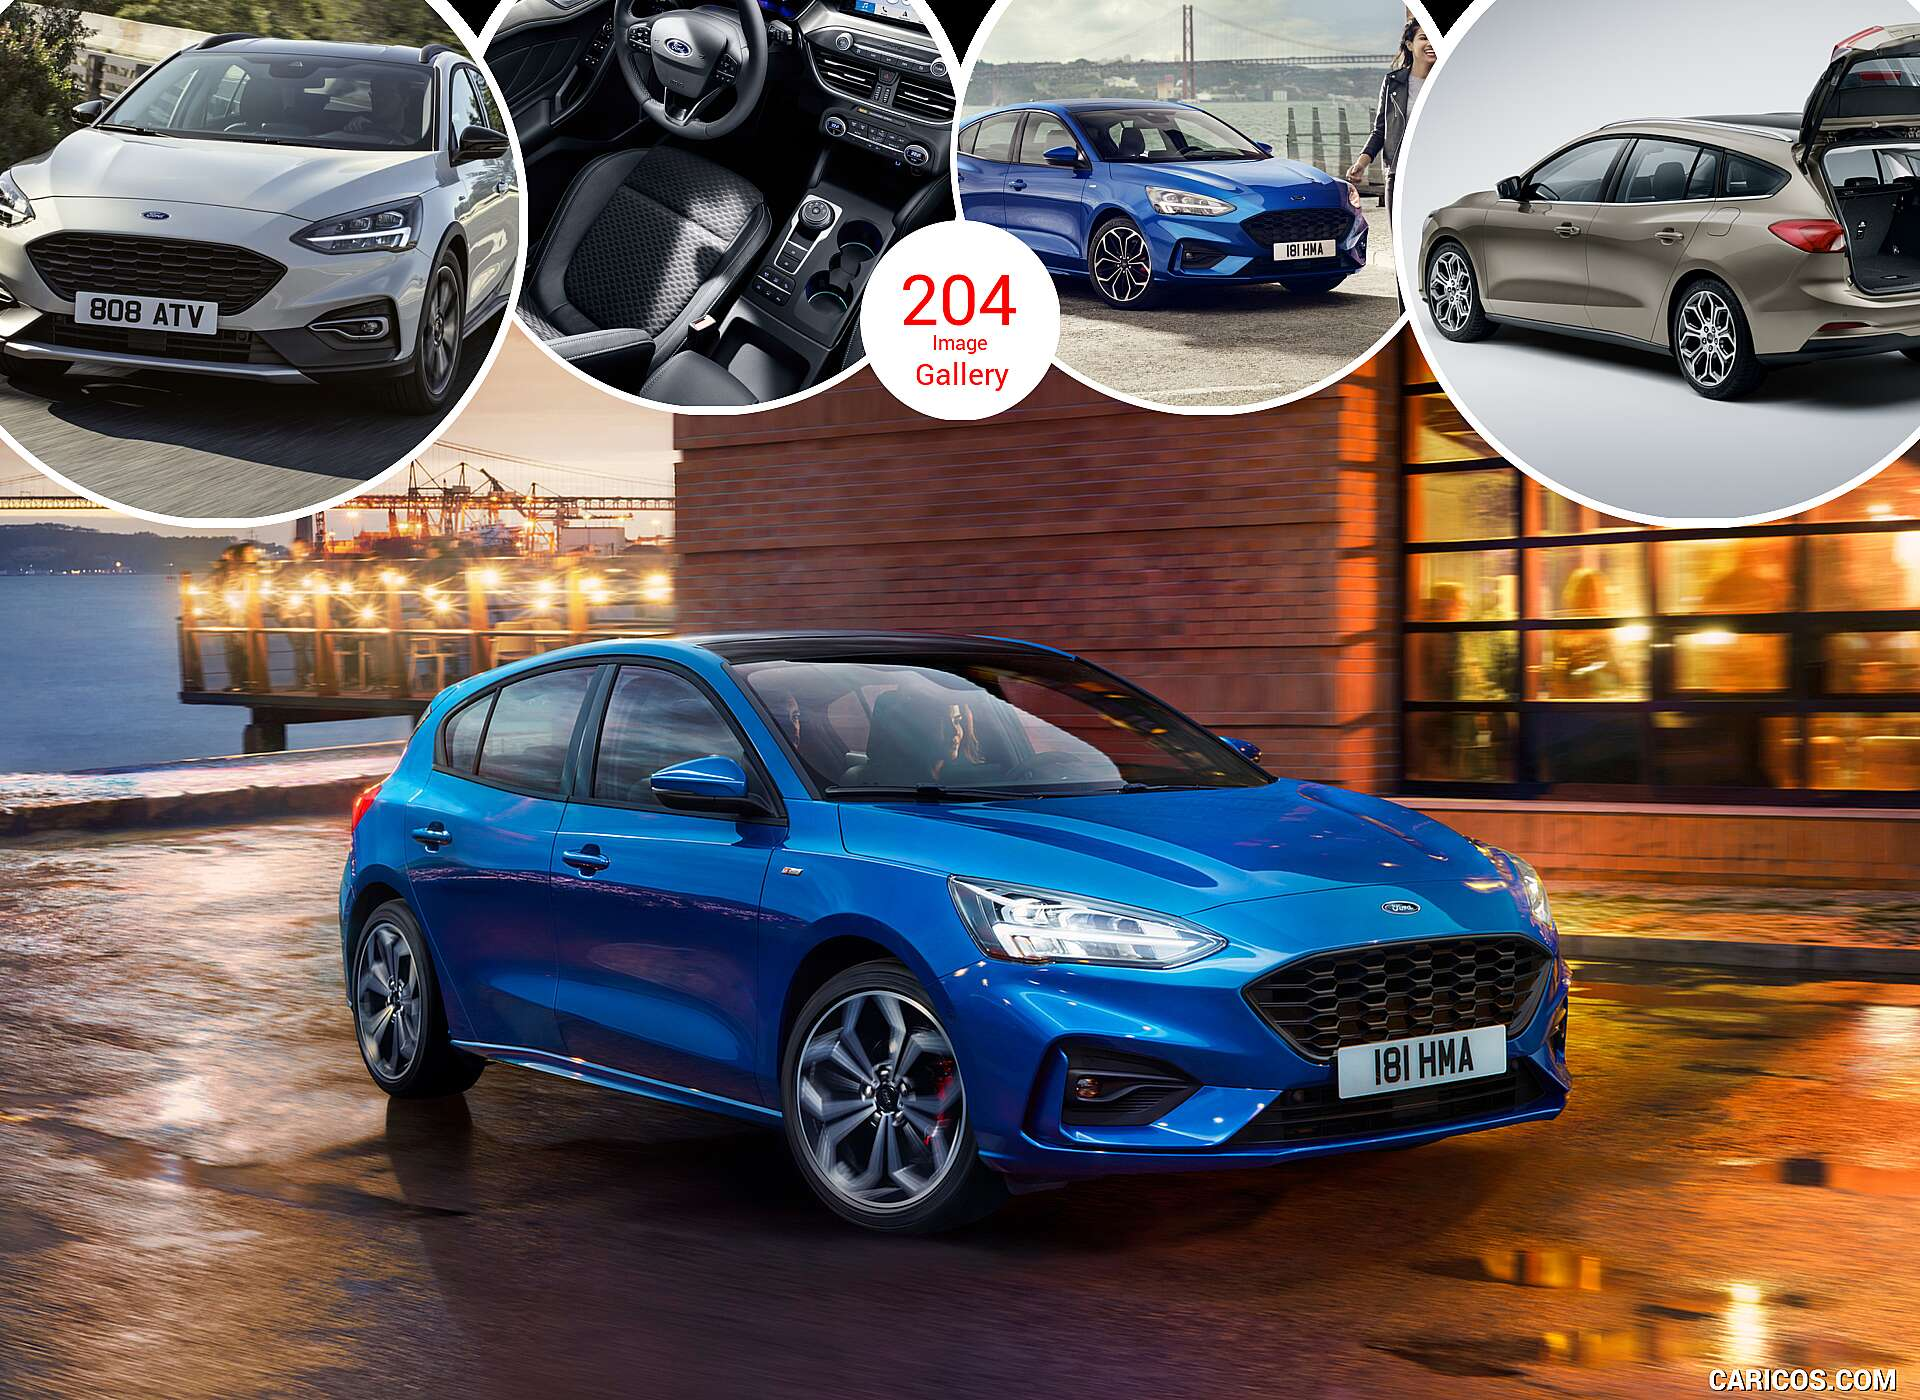 2019 Ford Focus Hatchback, Wagon, and Active (Euro-Spec)